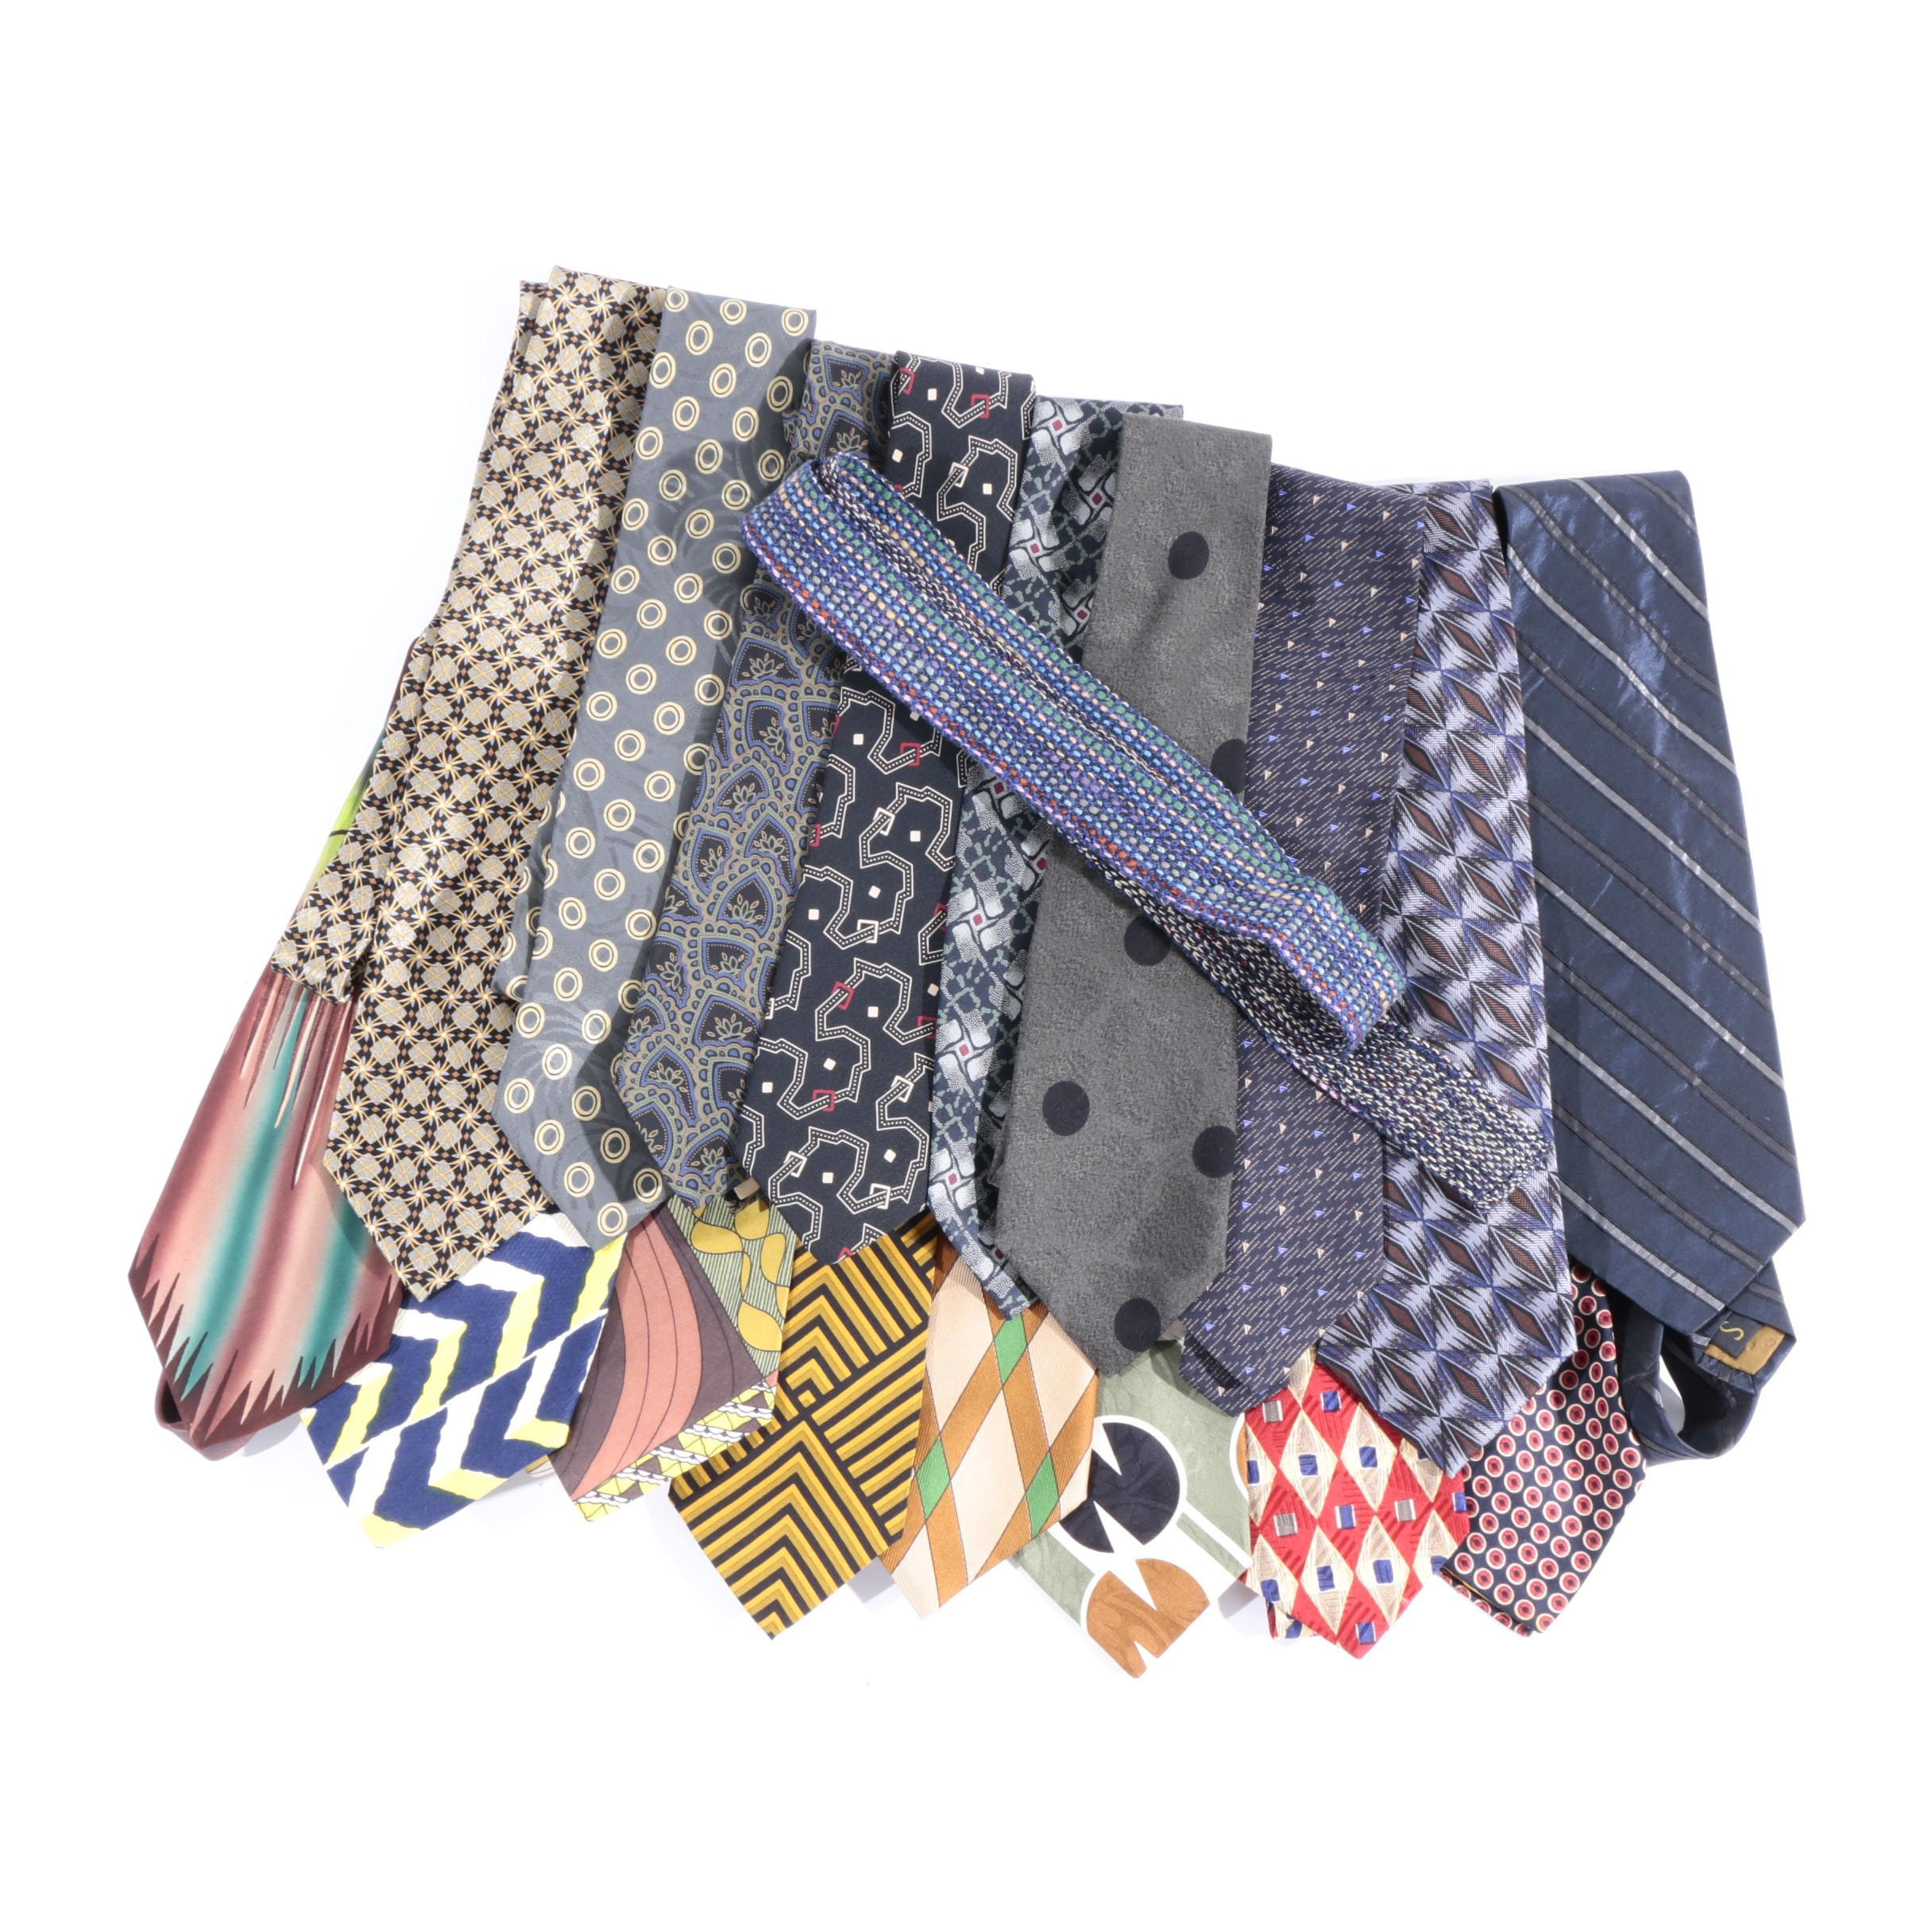 Men's Vintage and Modern Printed Neckties Including Lanvin and Giorgio Armani